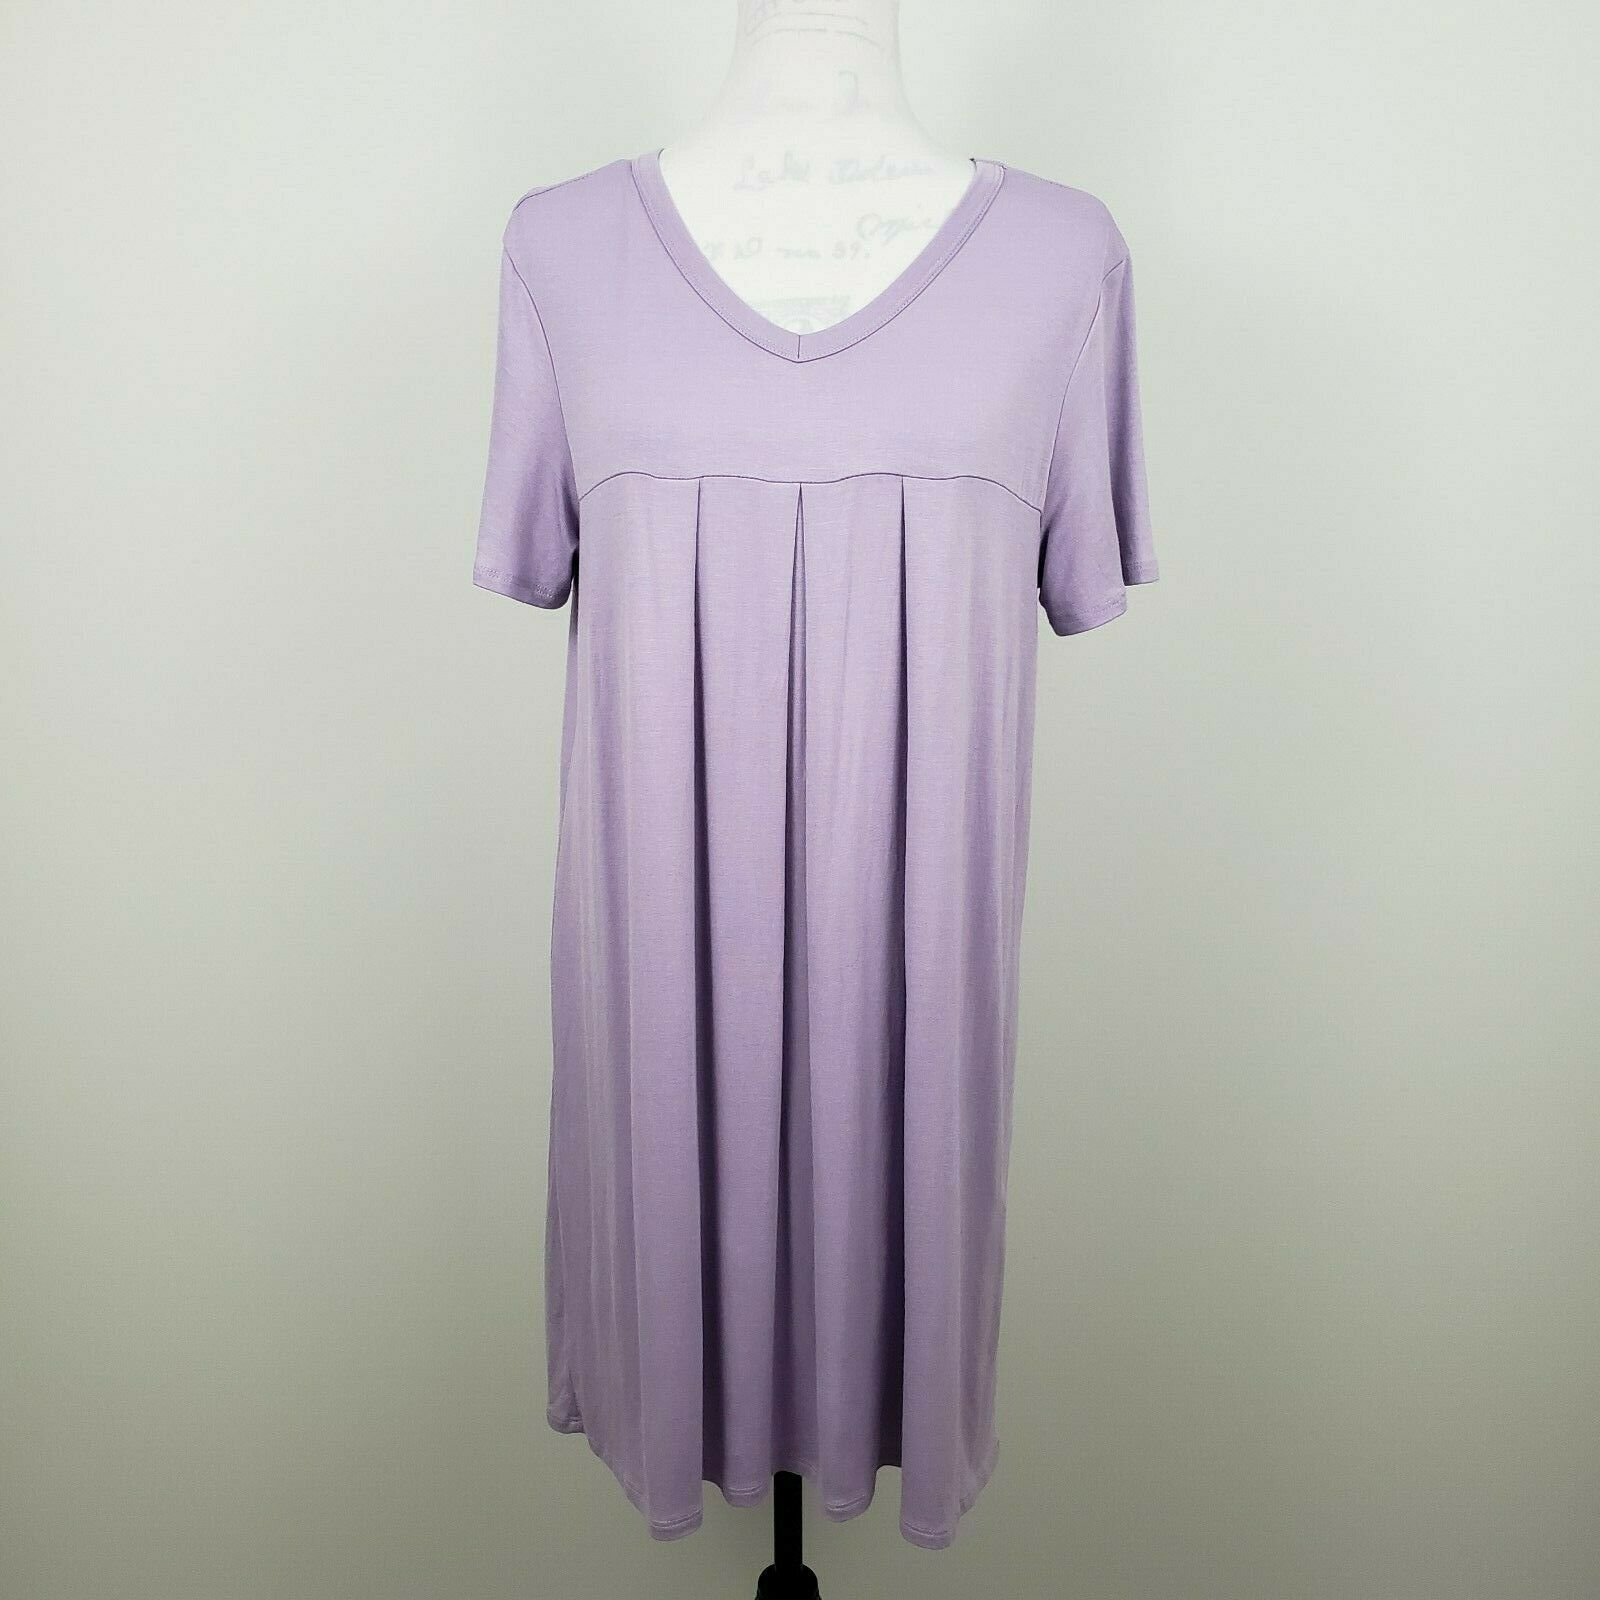 Made by Johnny Pleated Tunic Top Womens XL Lavender Short Sl